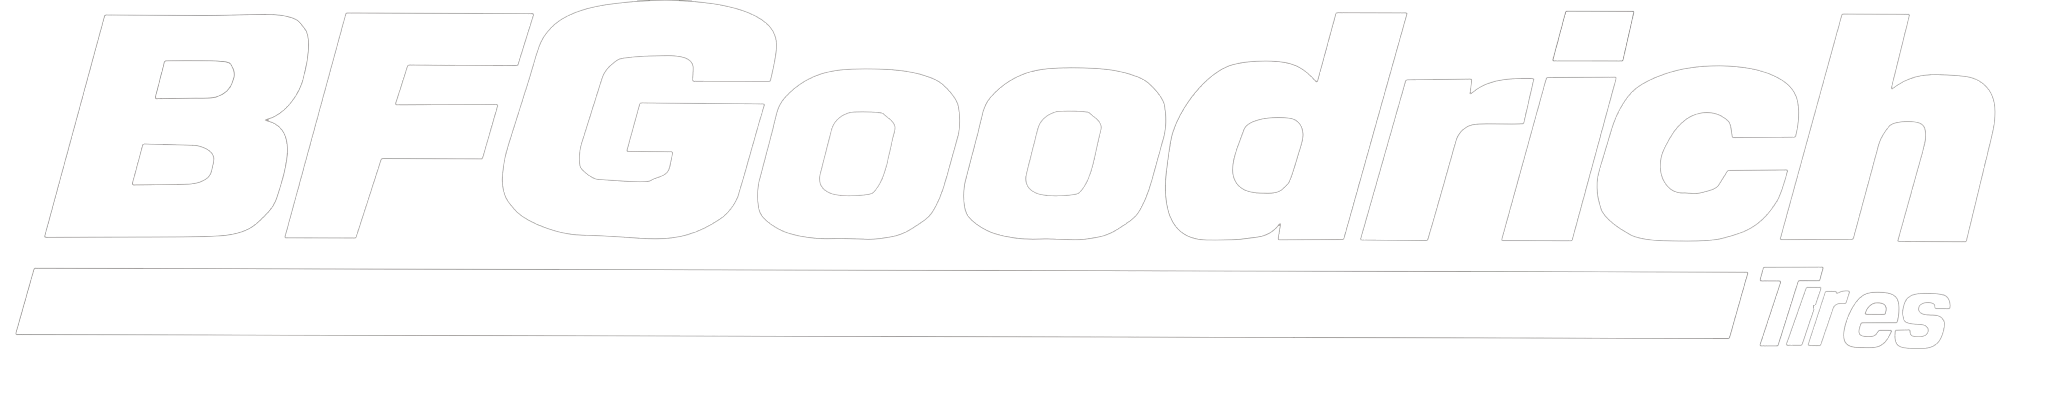 bfgoodwrench.png